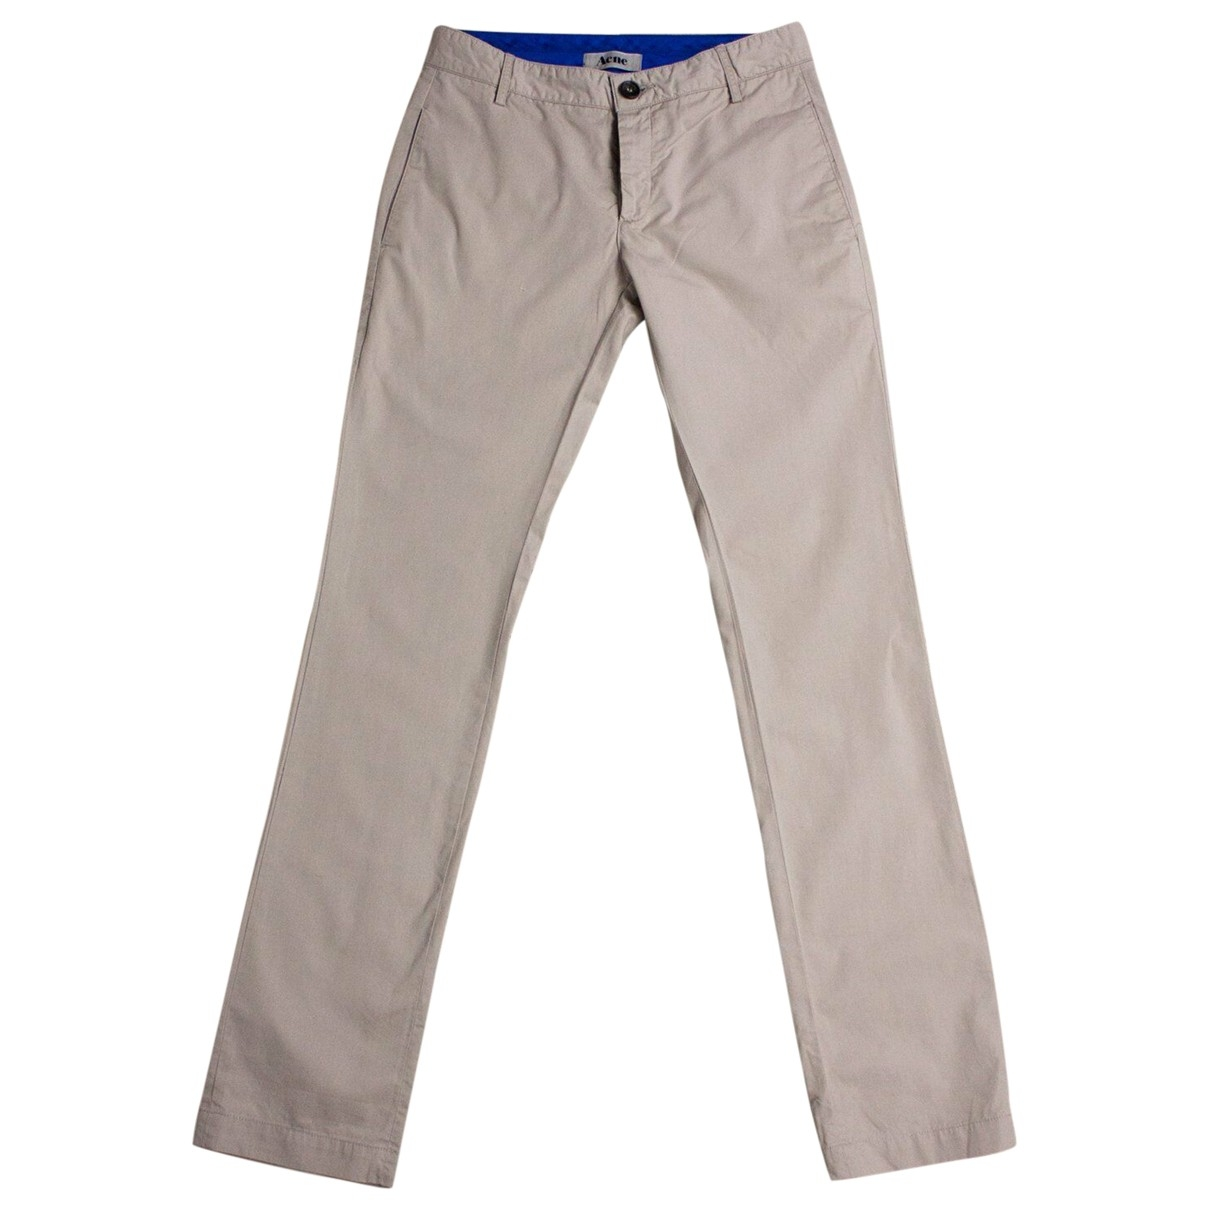 Acne Studios \N Brown Cotton Trousers for Women S International